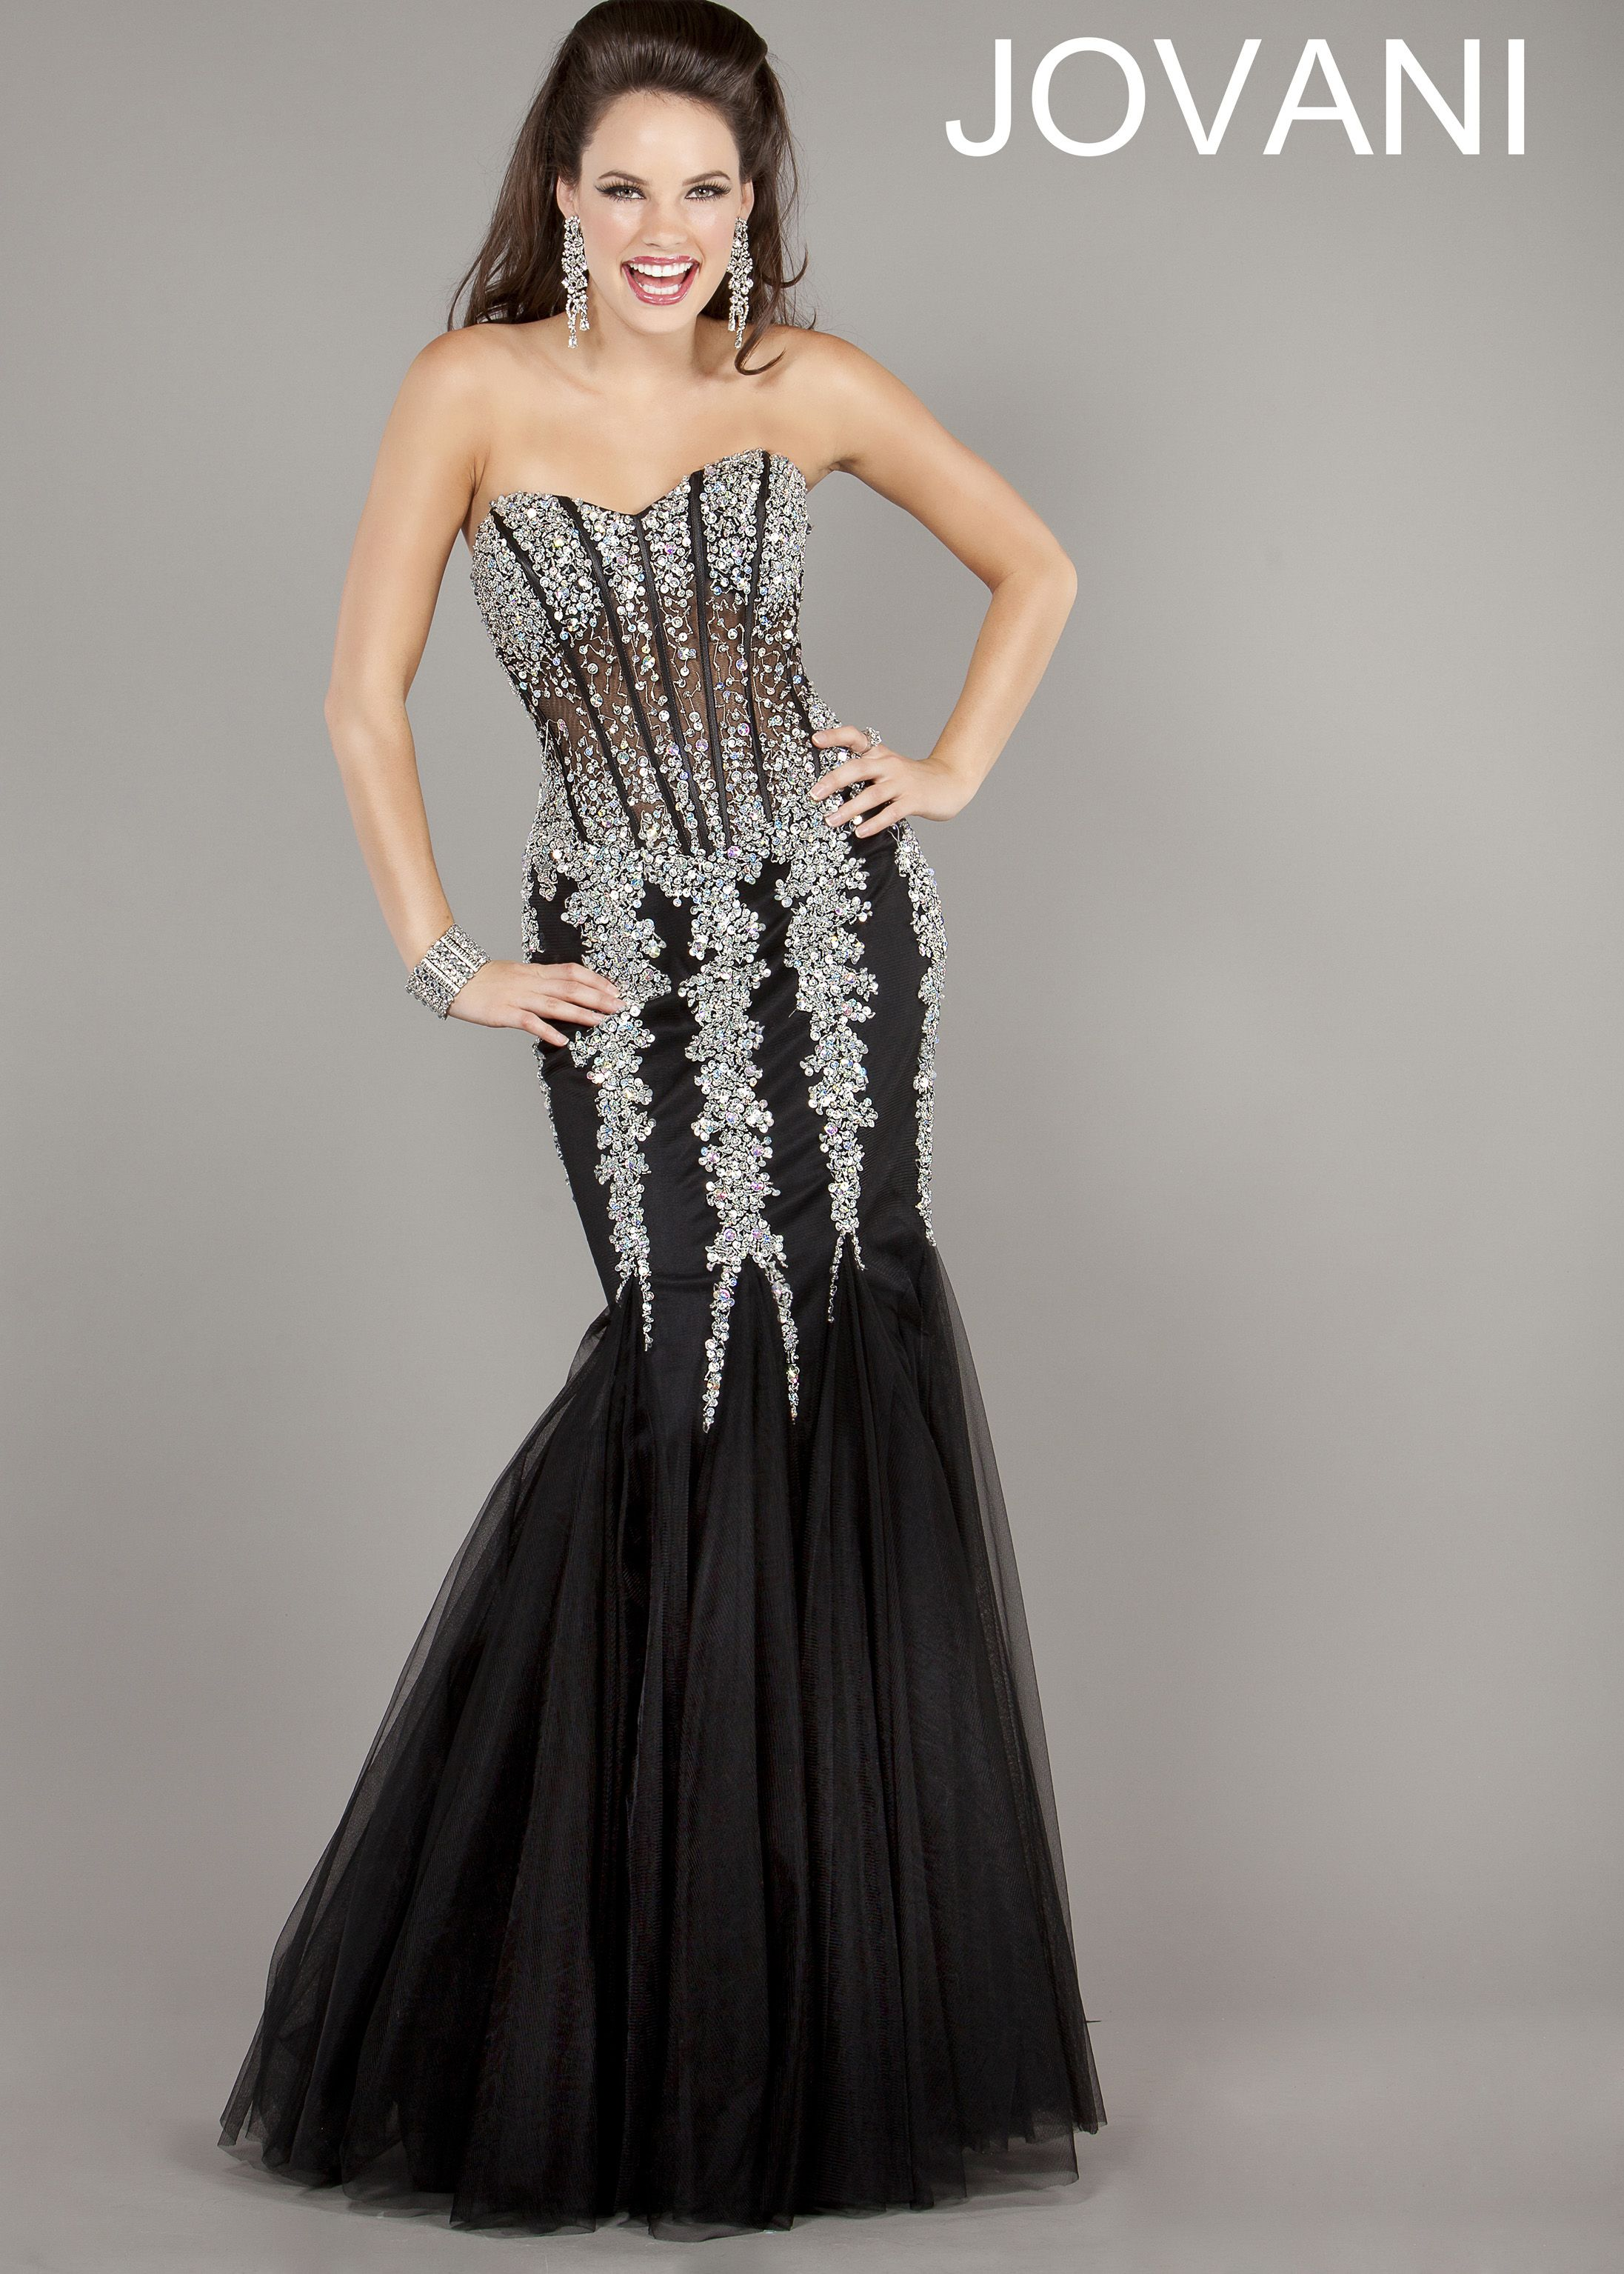 Black jovani mermaid prom dress recommend dress for summer in 2019